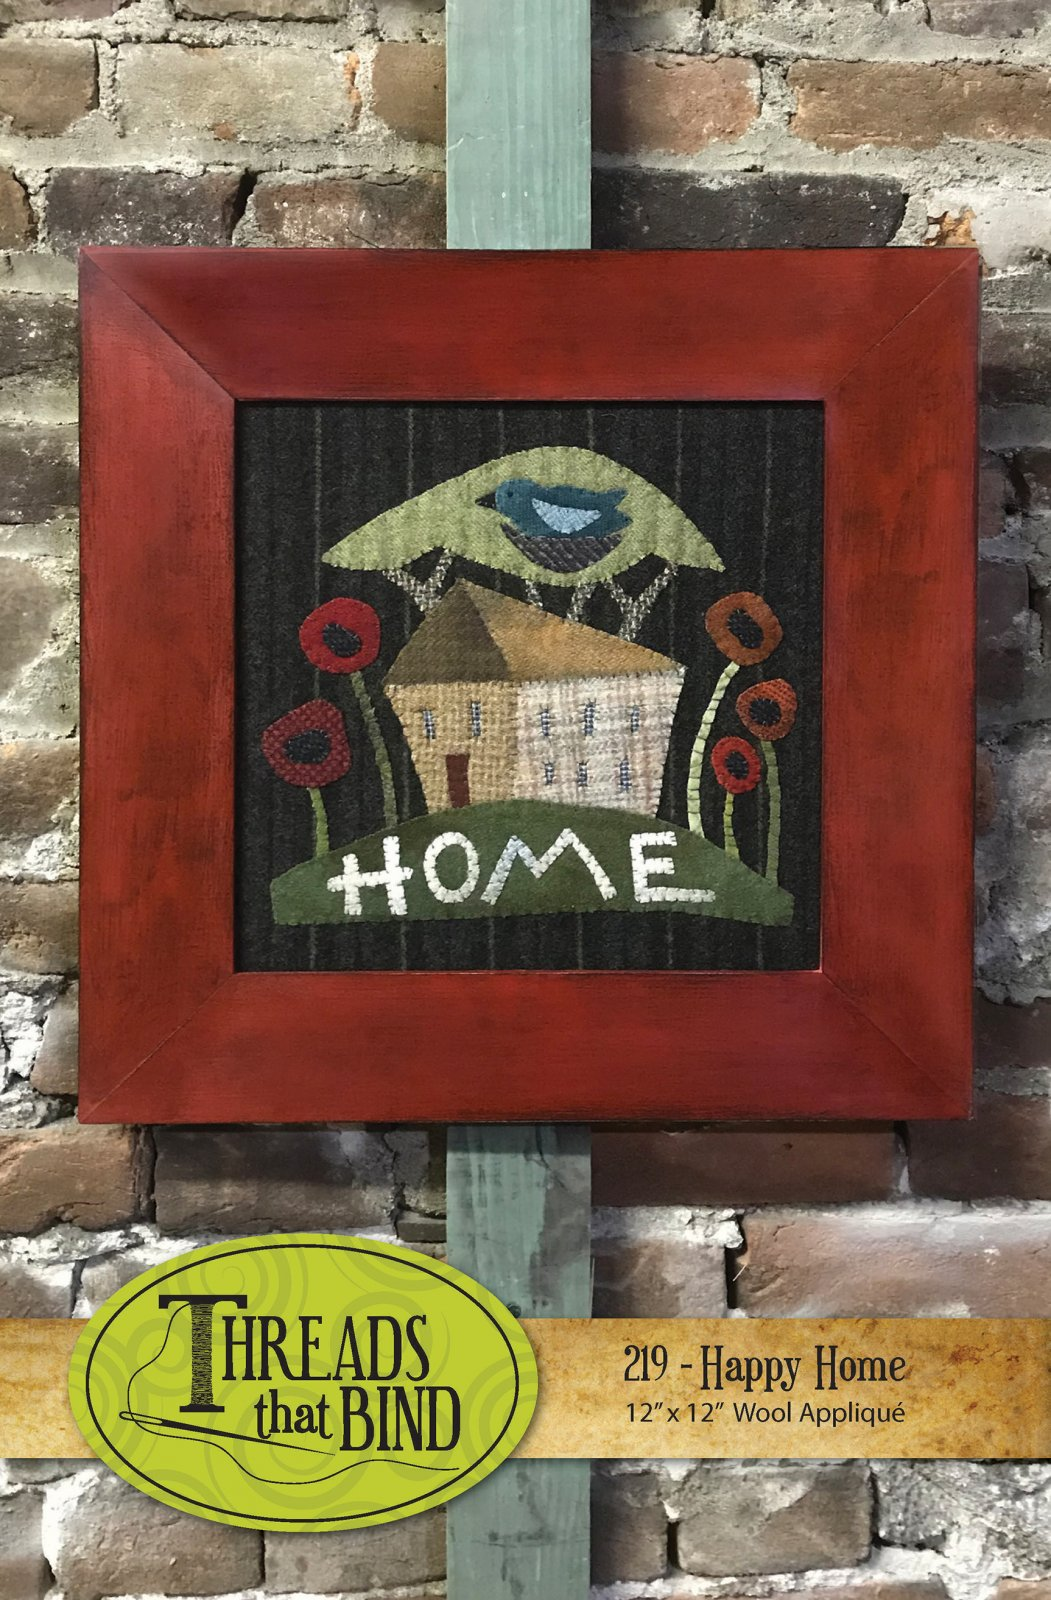 Happy Home 12 X 12 Wool Applique Threads That Bind